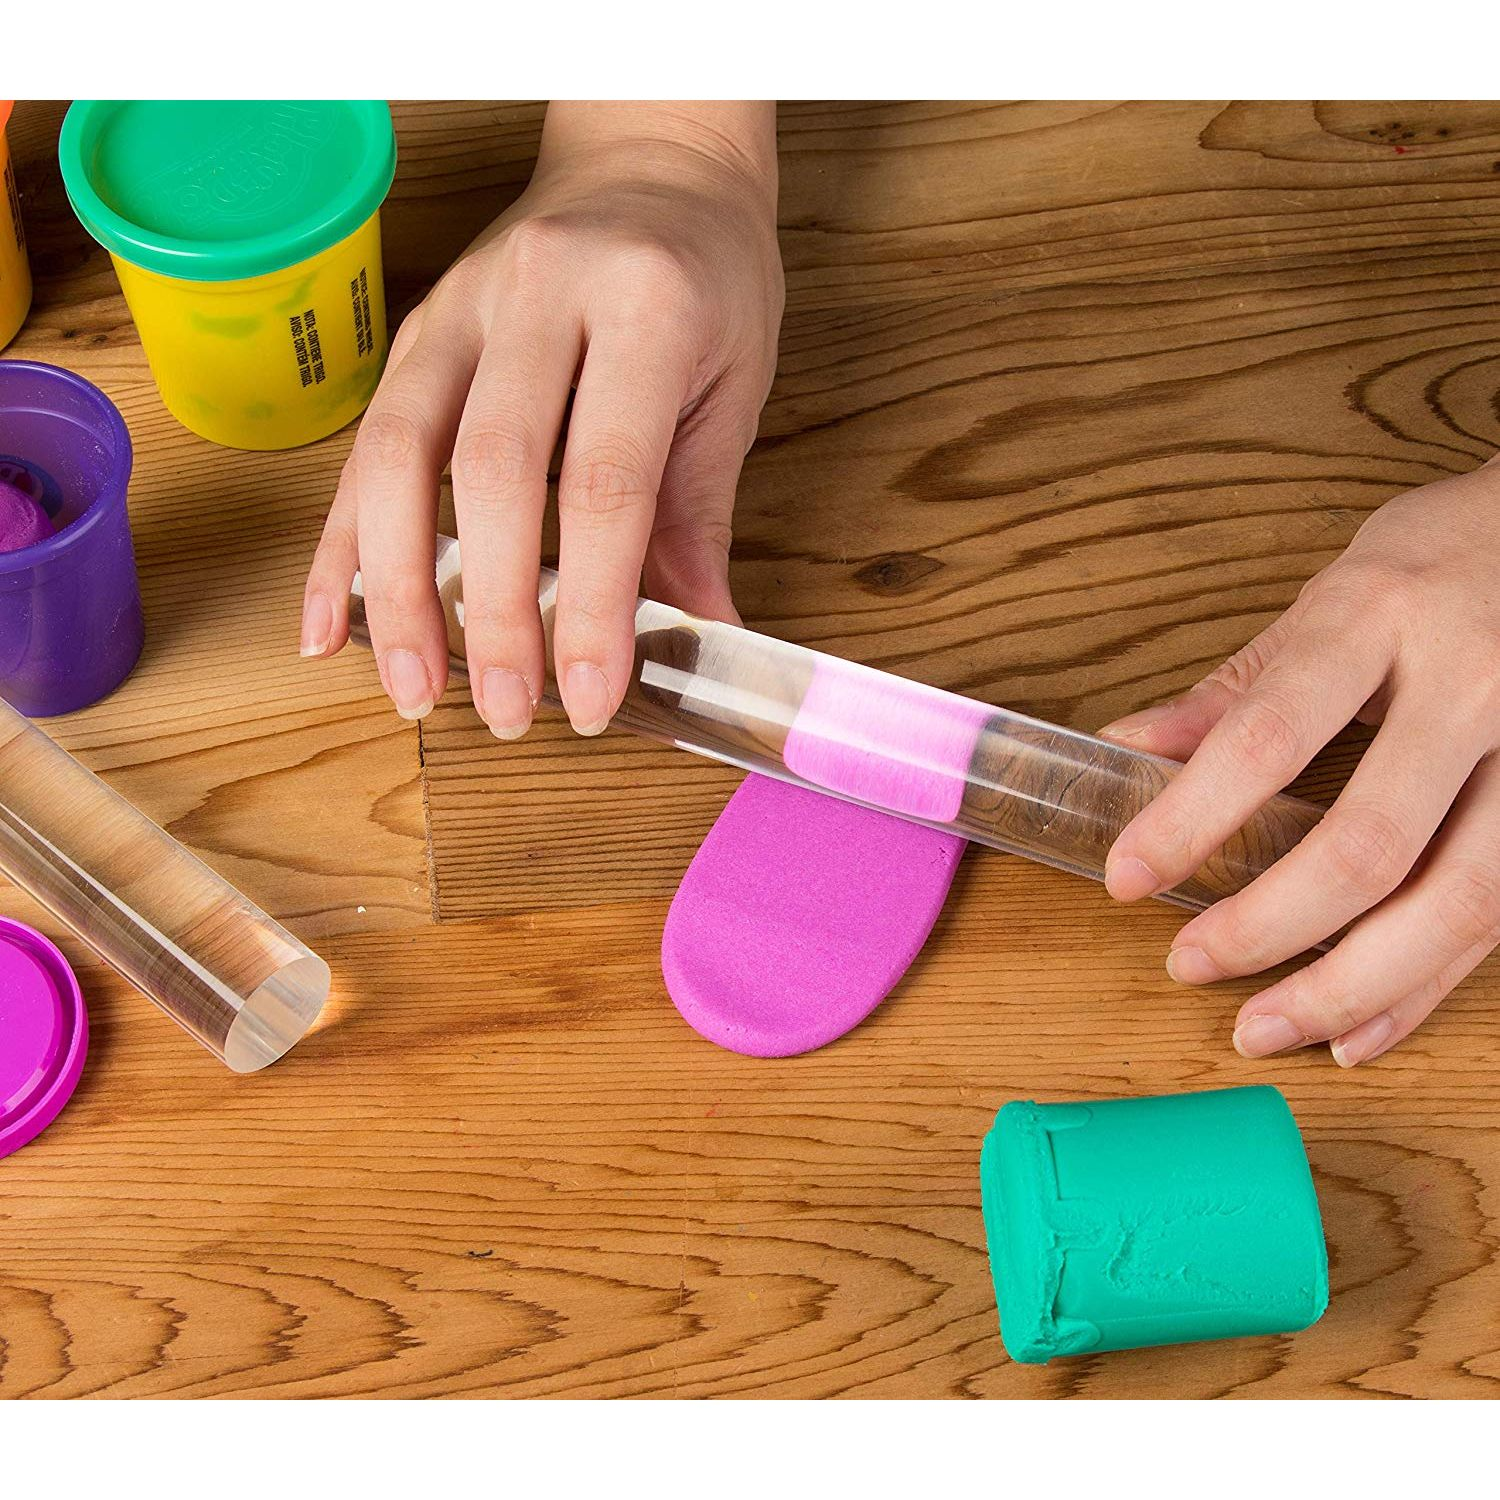 KORENJUL Acrylic Clay Roller Rolling Clay Bar Roll Stick Rod Rolling Pin for Shaping and Sculpting